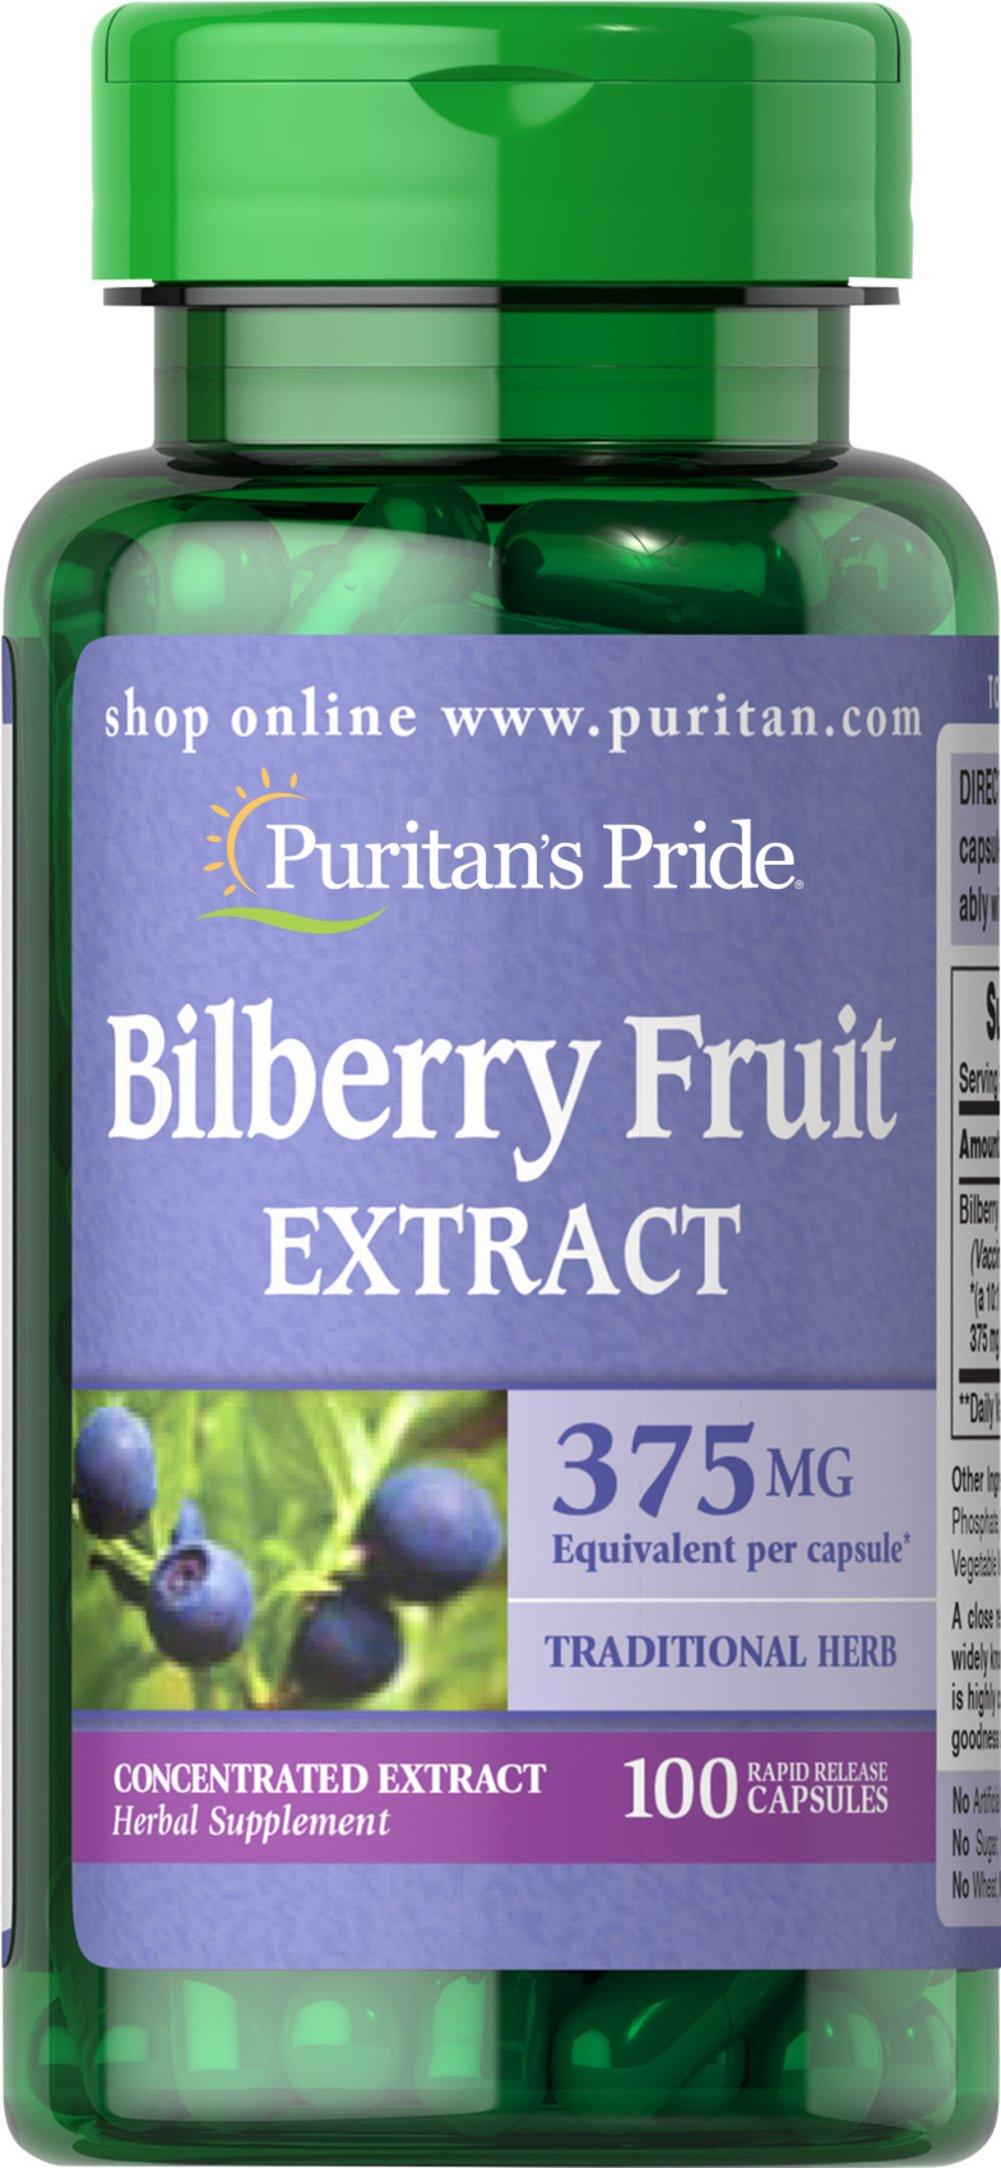 Bilberry 10:1 Extract 375 mg <p>Bilberry is a close relative of Blueberries. Our high-quality Bilberry contains over 15 different naturally-occurring anthocyanosides, which are flavonoids that contain beneficial antioxidant properties.** This formula contains 375 mg Bilberry (Vaccinium myrtillus) (fruit) (from 37.5 mg of 10:1 Extract).</p>  100 Capsules 375 mg $10.99